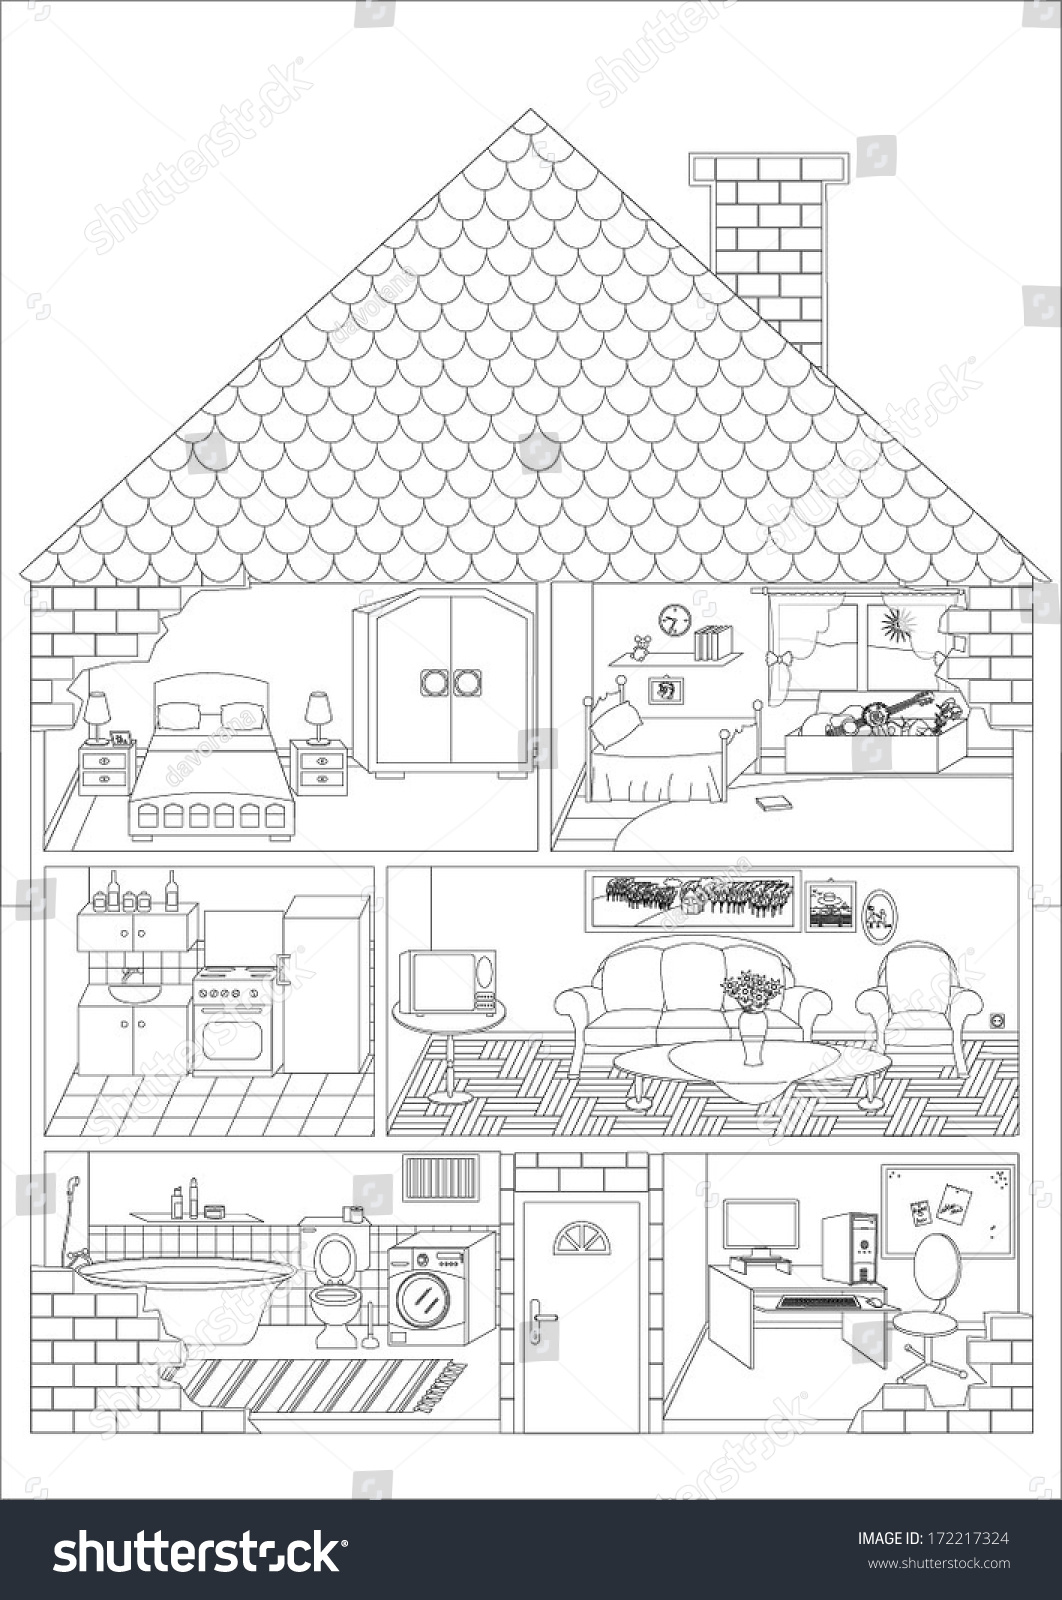 House Room Drawings: All Rooms House Outline Vector Art Stock Vector 172217324